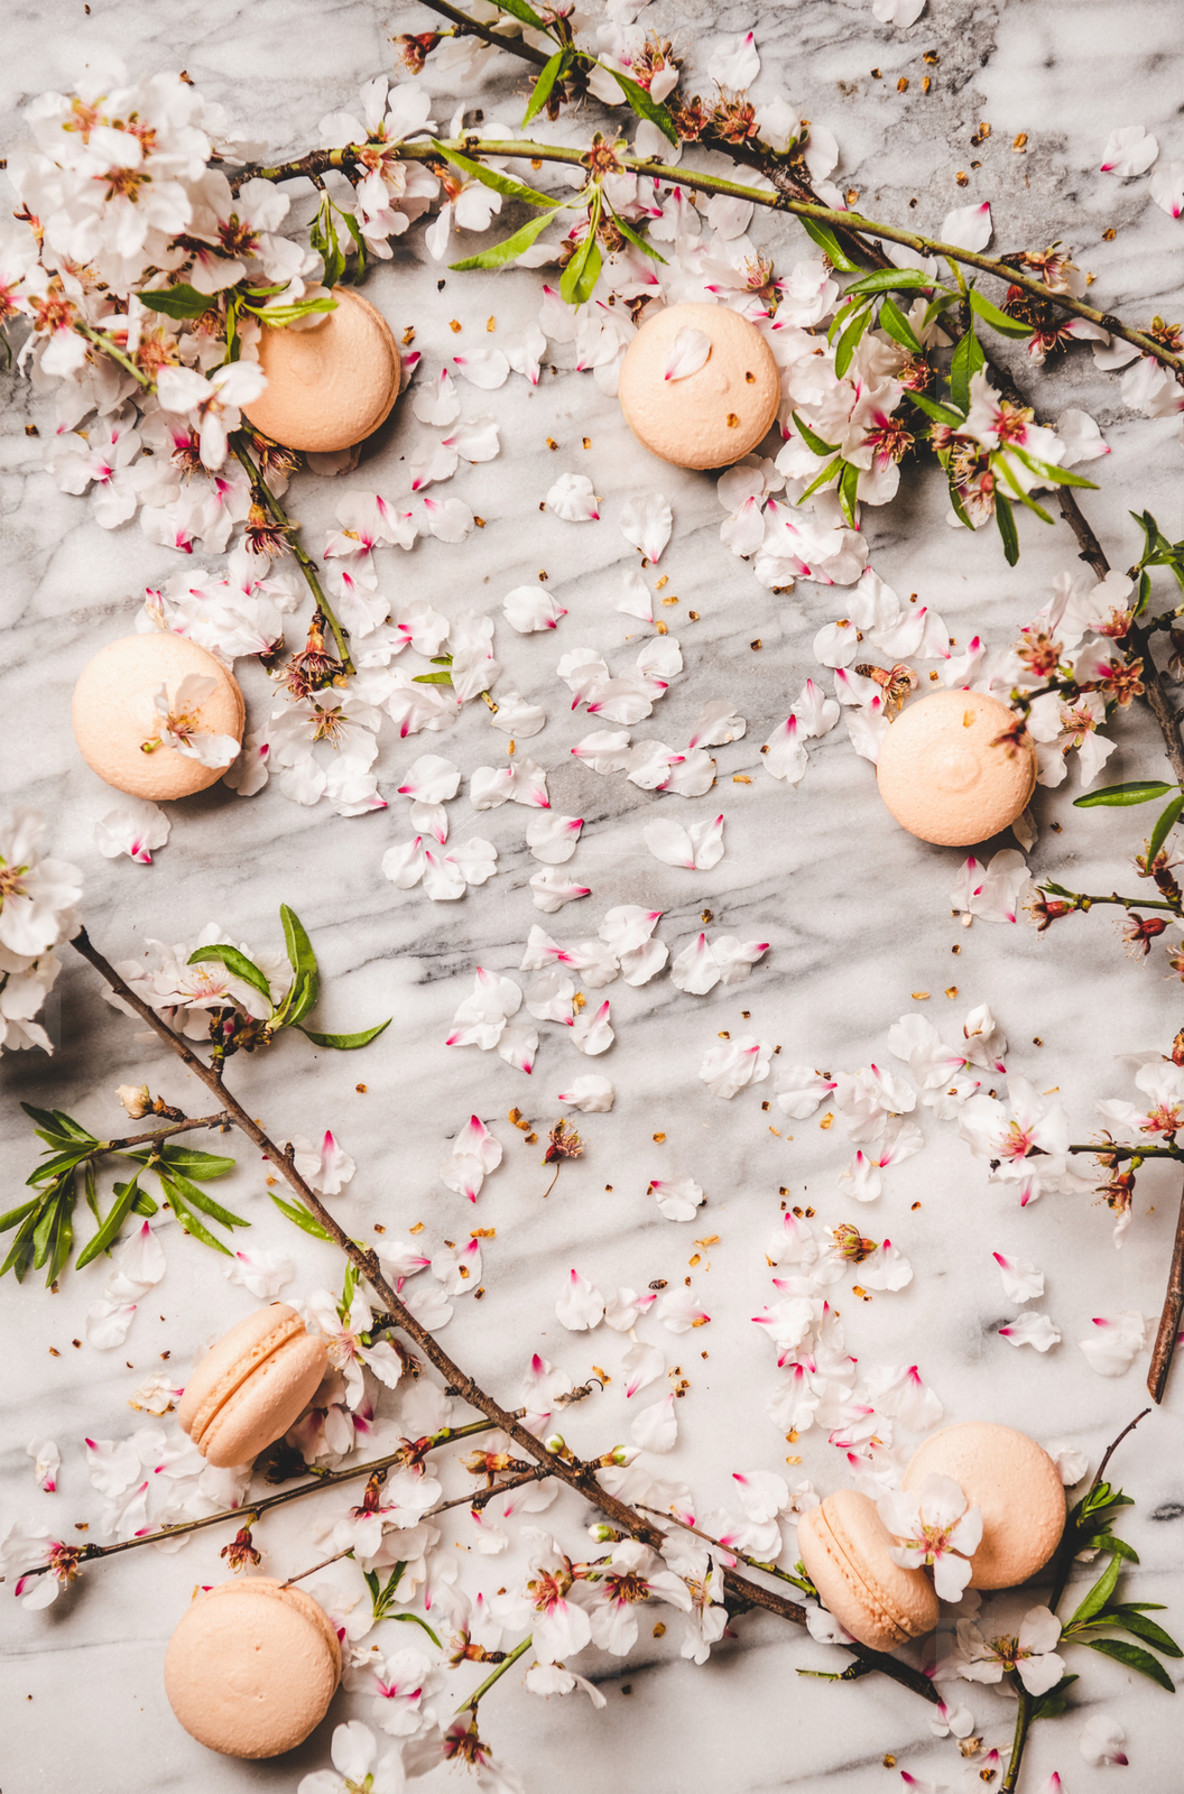 Sweet macaron cookies and white spring blossom flowers  copy space